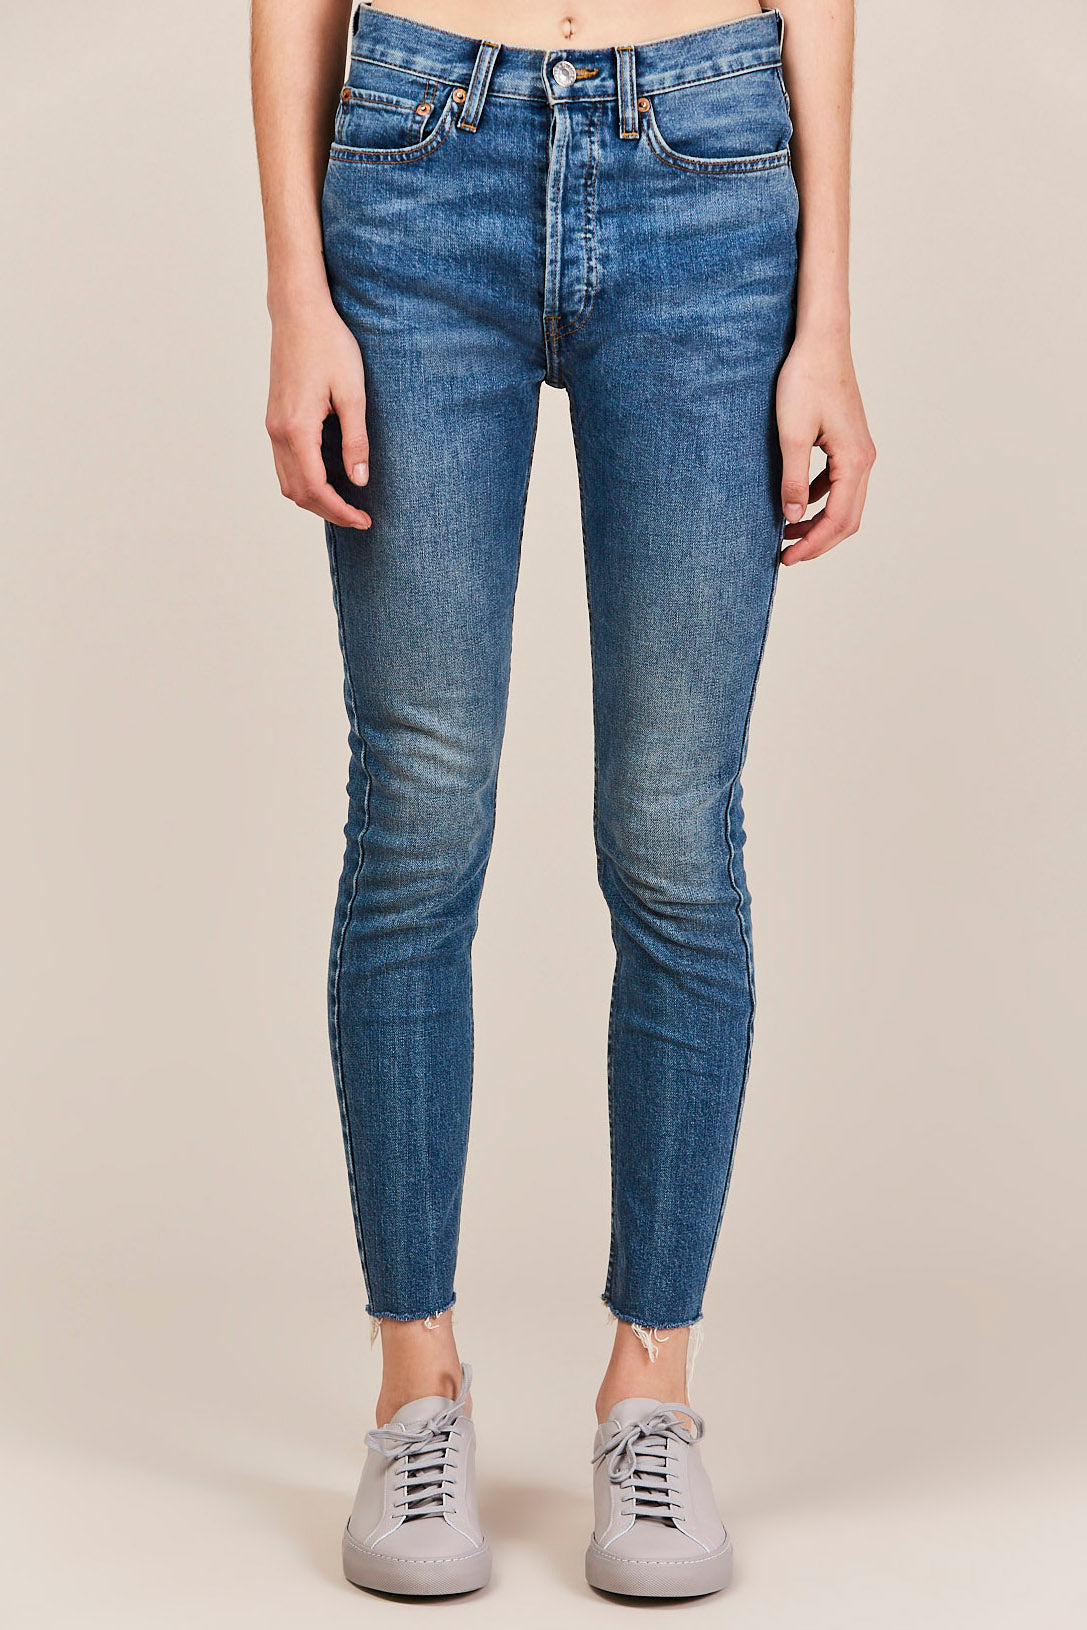 RE/DONE - High Rise Ankle Crop, Medium Vain Wash